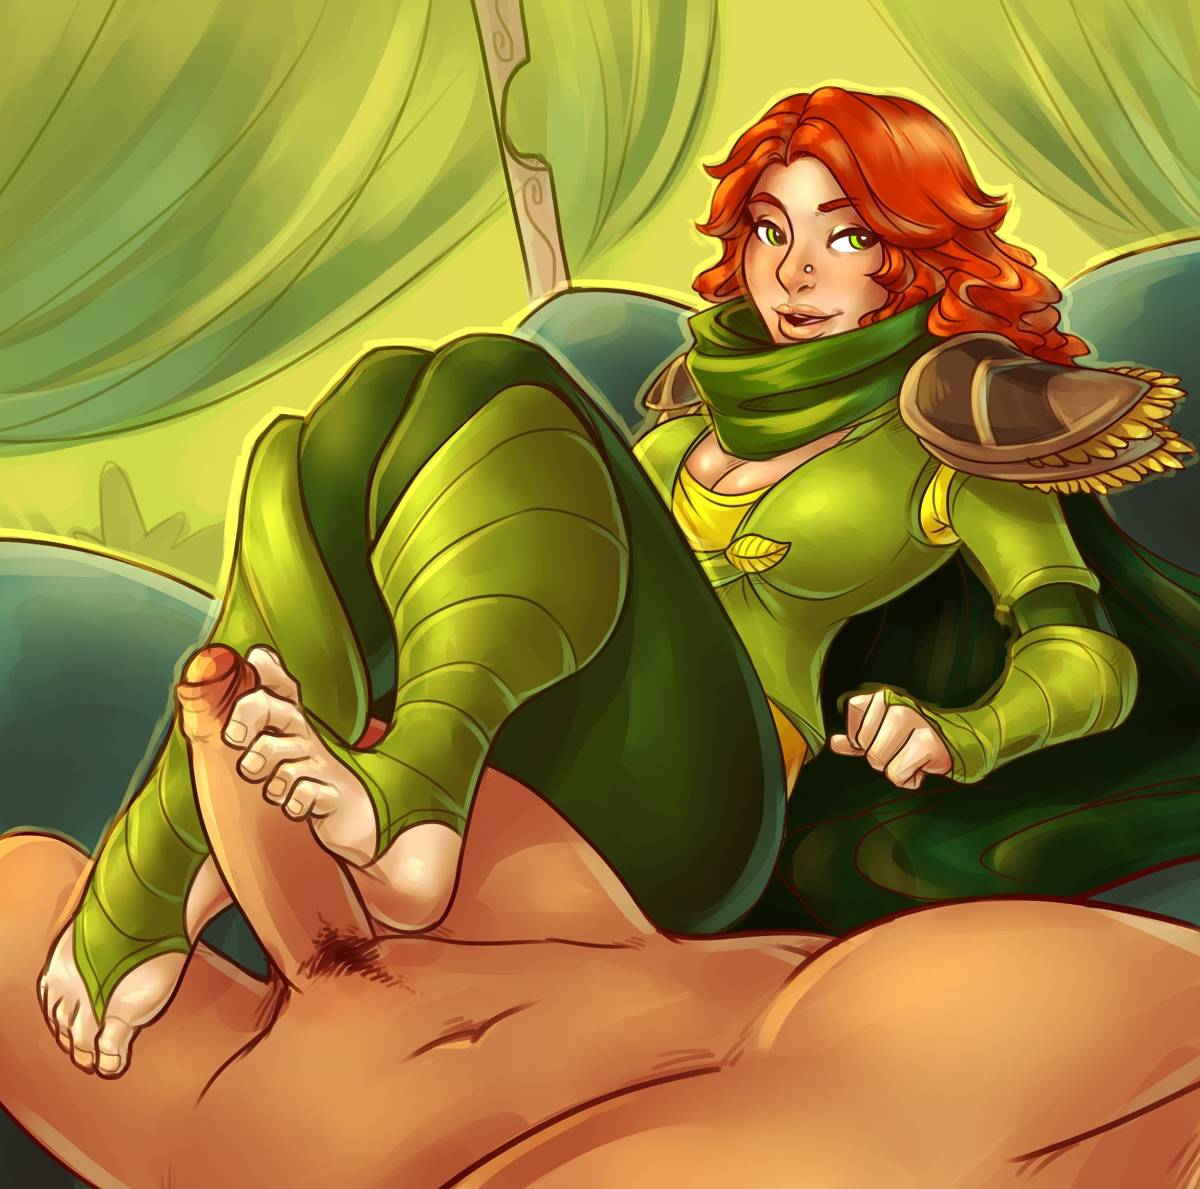 Dota sex toons naked comic